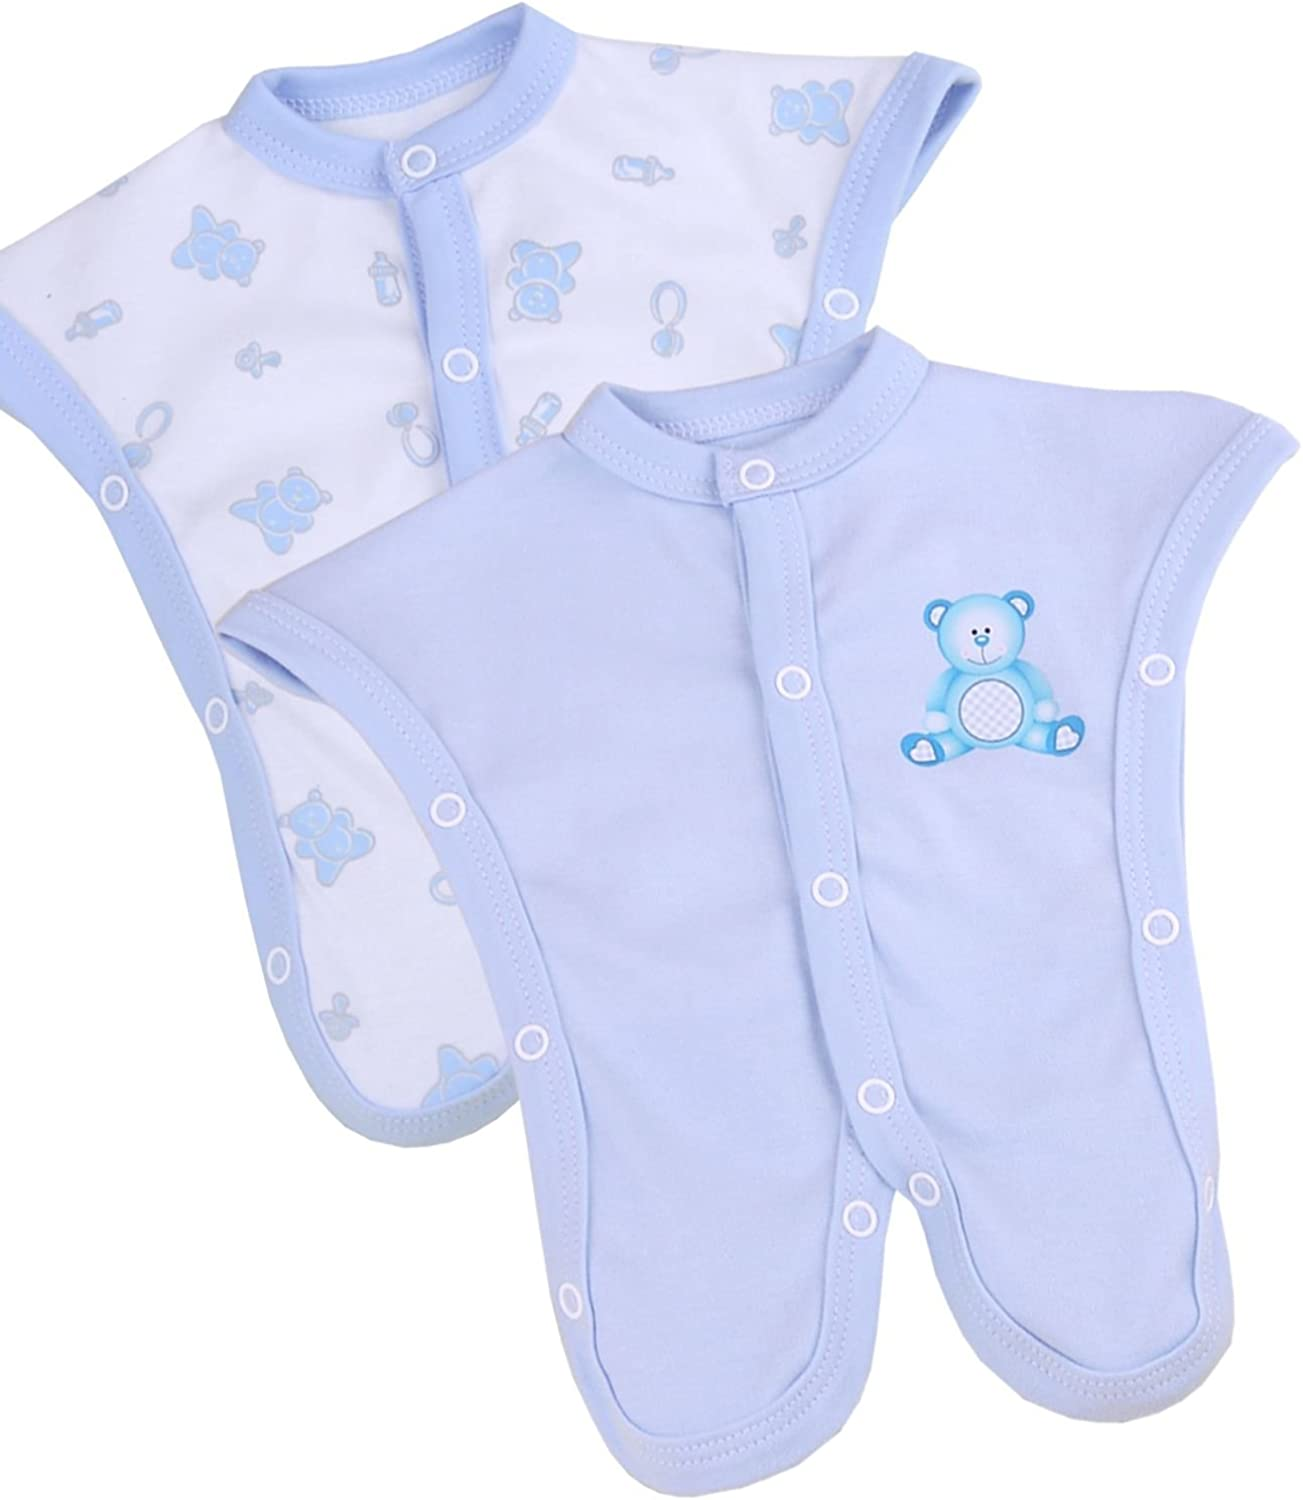 BabyPrem Baby Clothes Preemie Micro Boys Girls Sleeper Footie One Piece